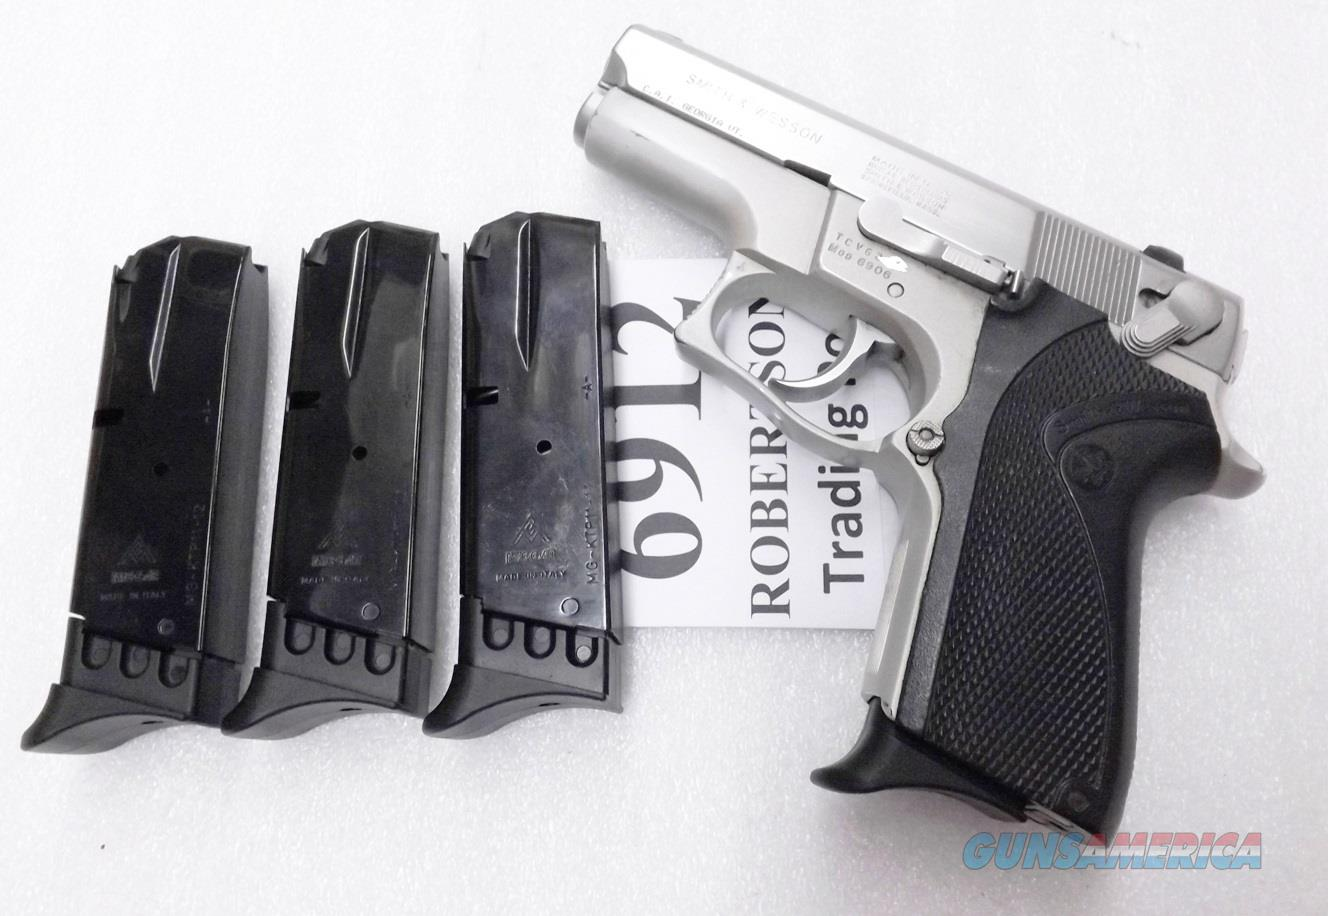 3 Smith & Wesson 6906 Magazines 12 Shot Mec-Gar S&W models 469 669 6904 6900 Series 19055 type 6912 New Blue KTCP1112 with Finger RestTail Piece Buy 3 Ships Free!  Non-Guns > Magazines & Clips > Pistol Magazines > Smith & Wesson